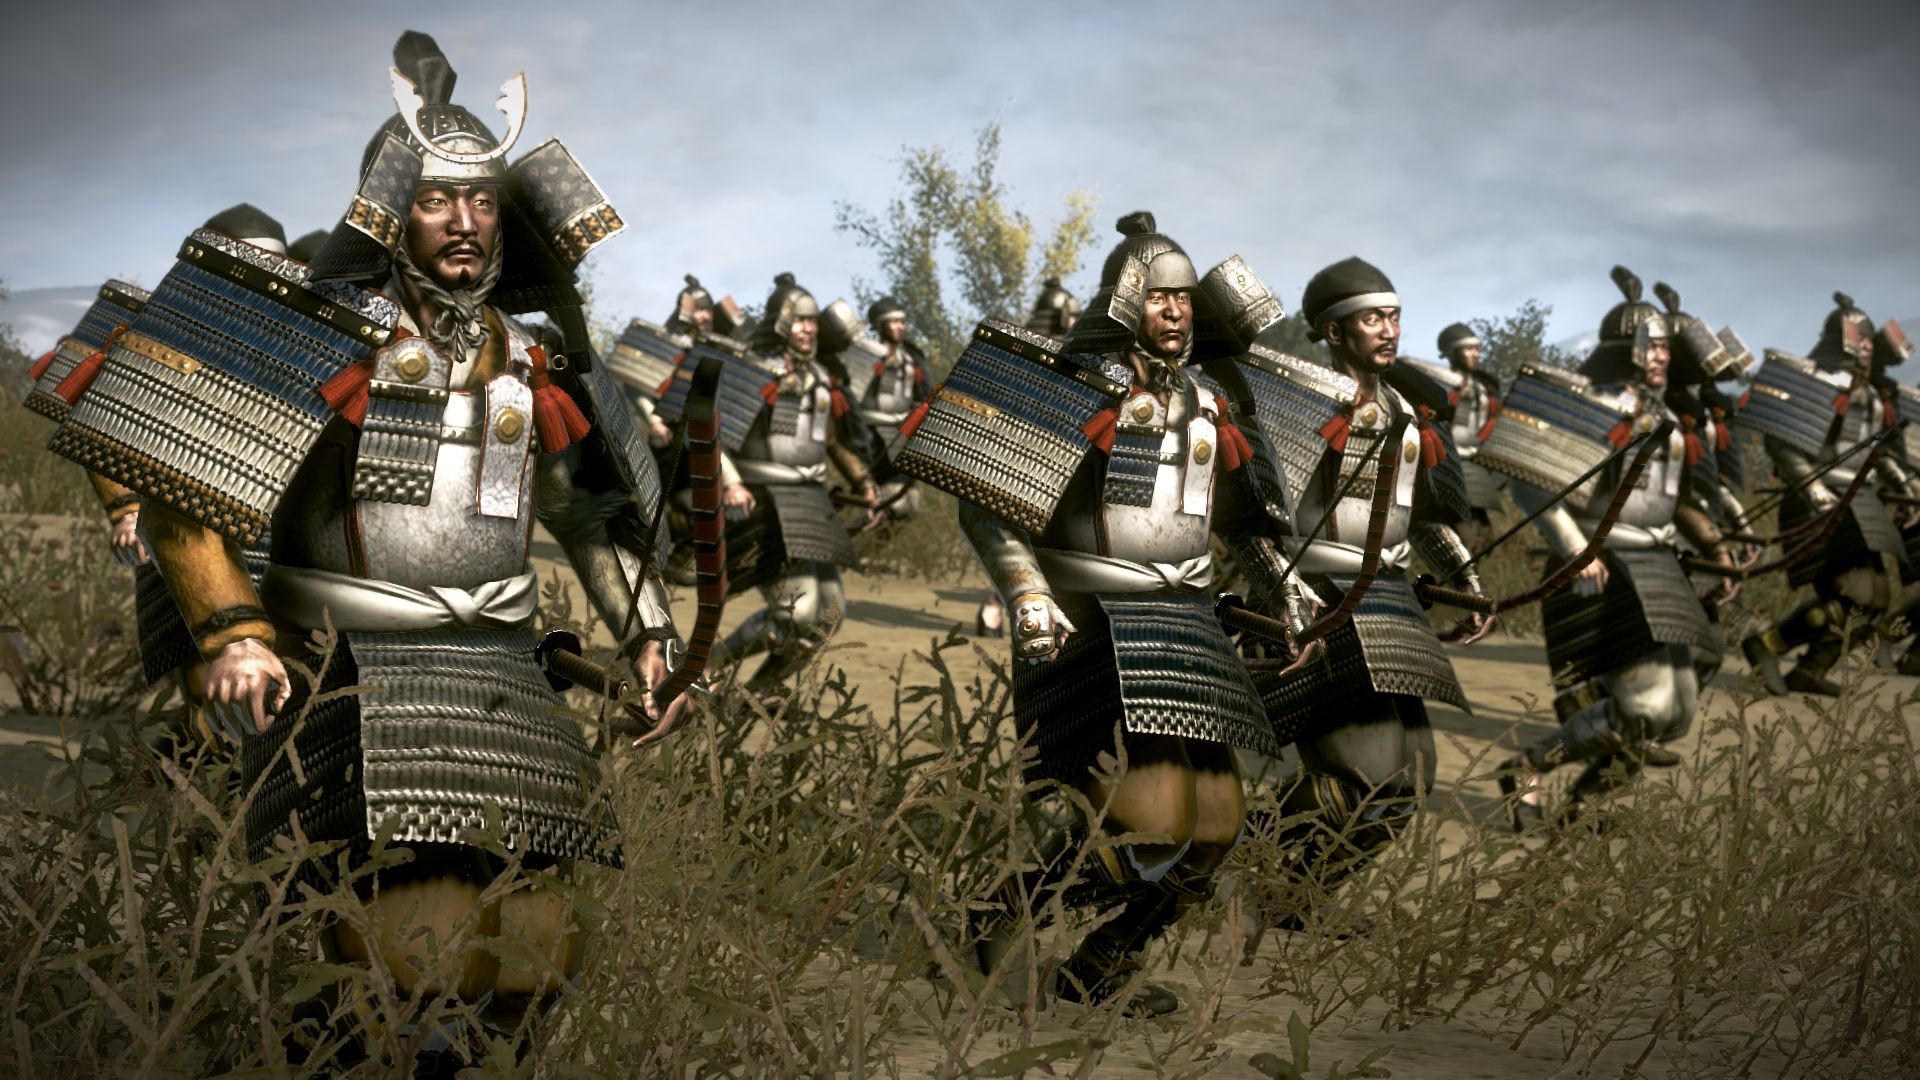 Save 66% on Total War: SHOGUN 2 - Rise of the Samurai Campaign on Steam